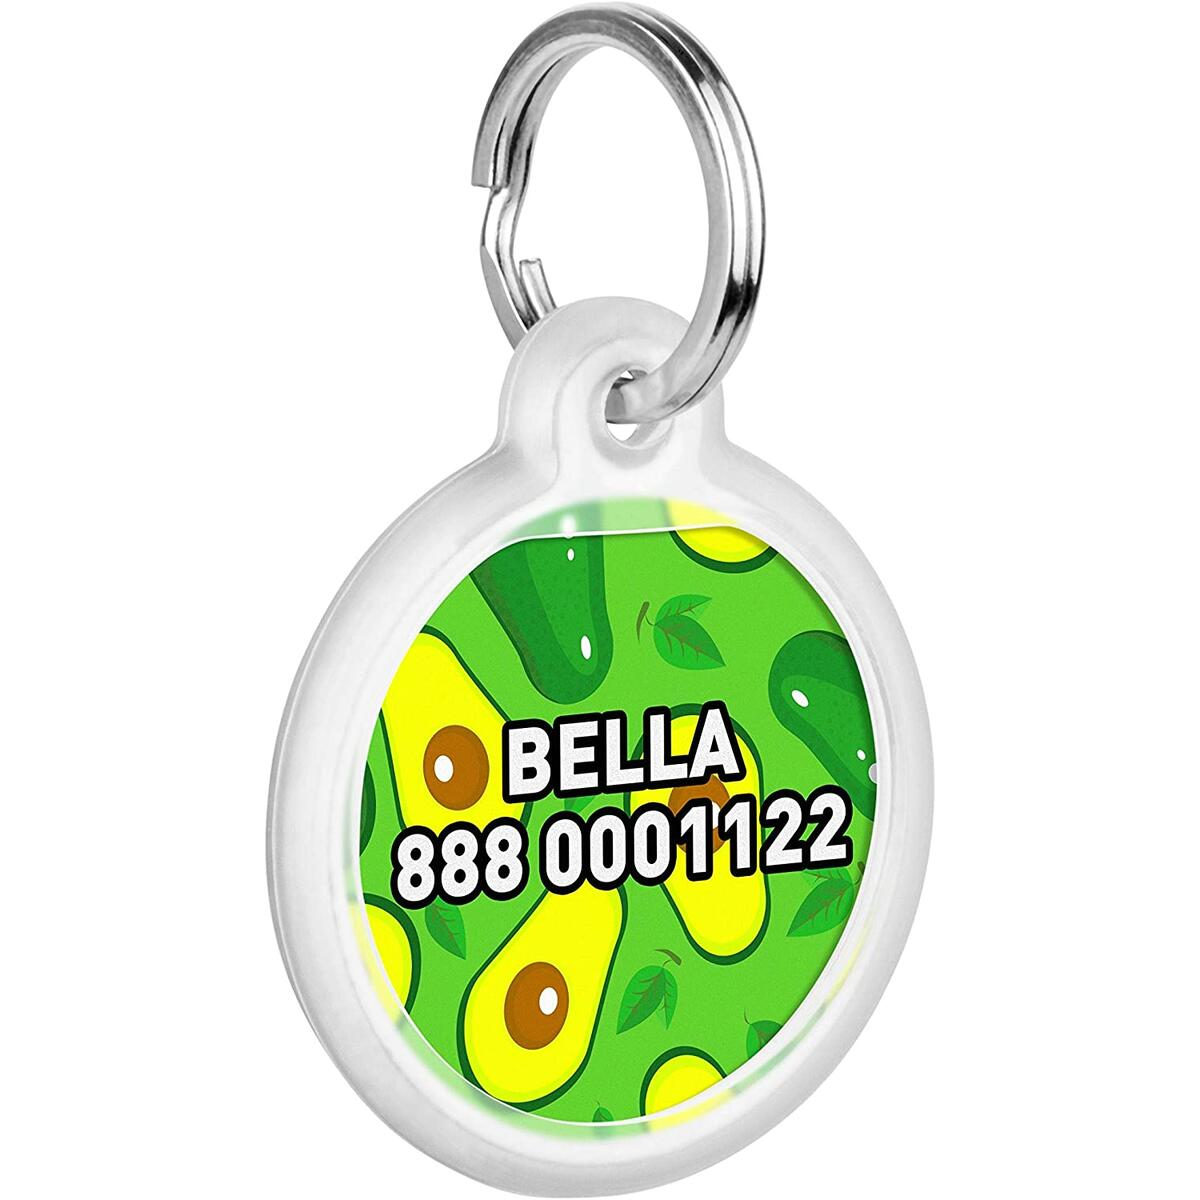 Personalized Pet ID Tag for Dog Cat with QR Pasport Global Search System of Lost Pets - Avocado Pattern